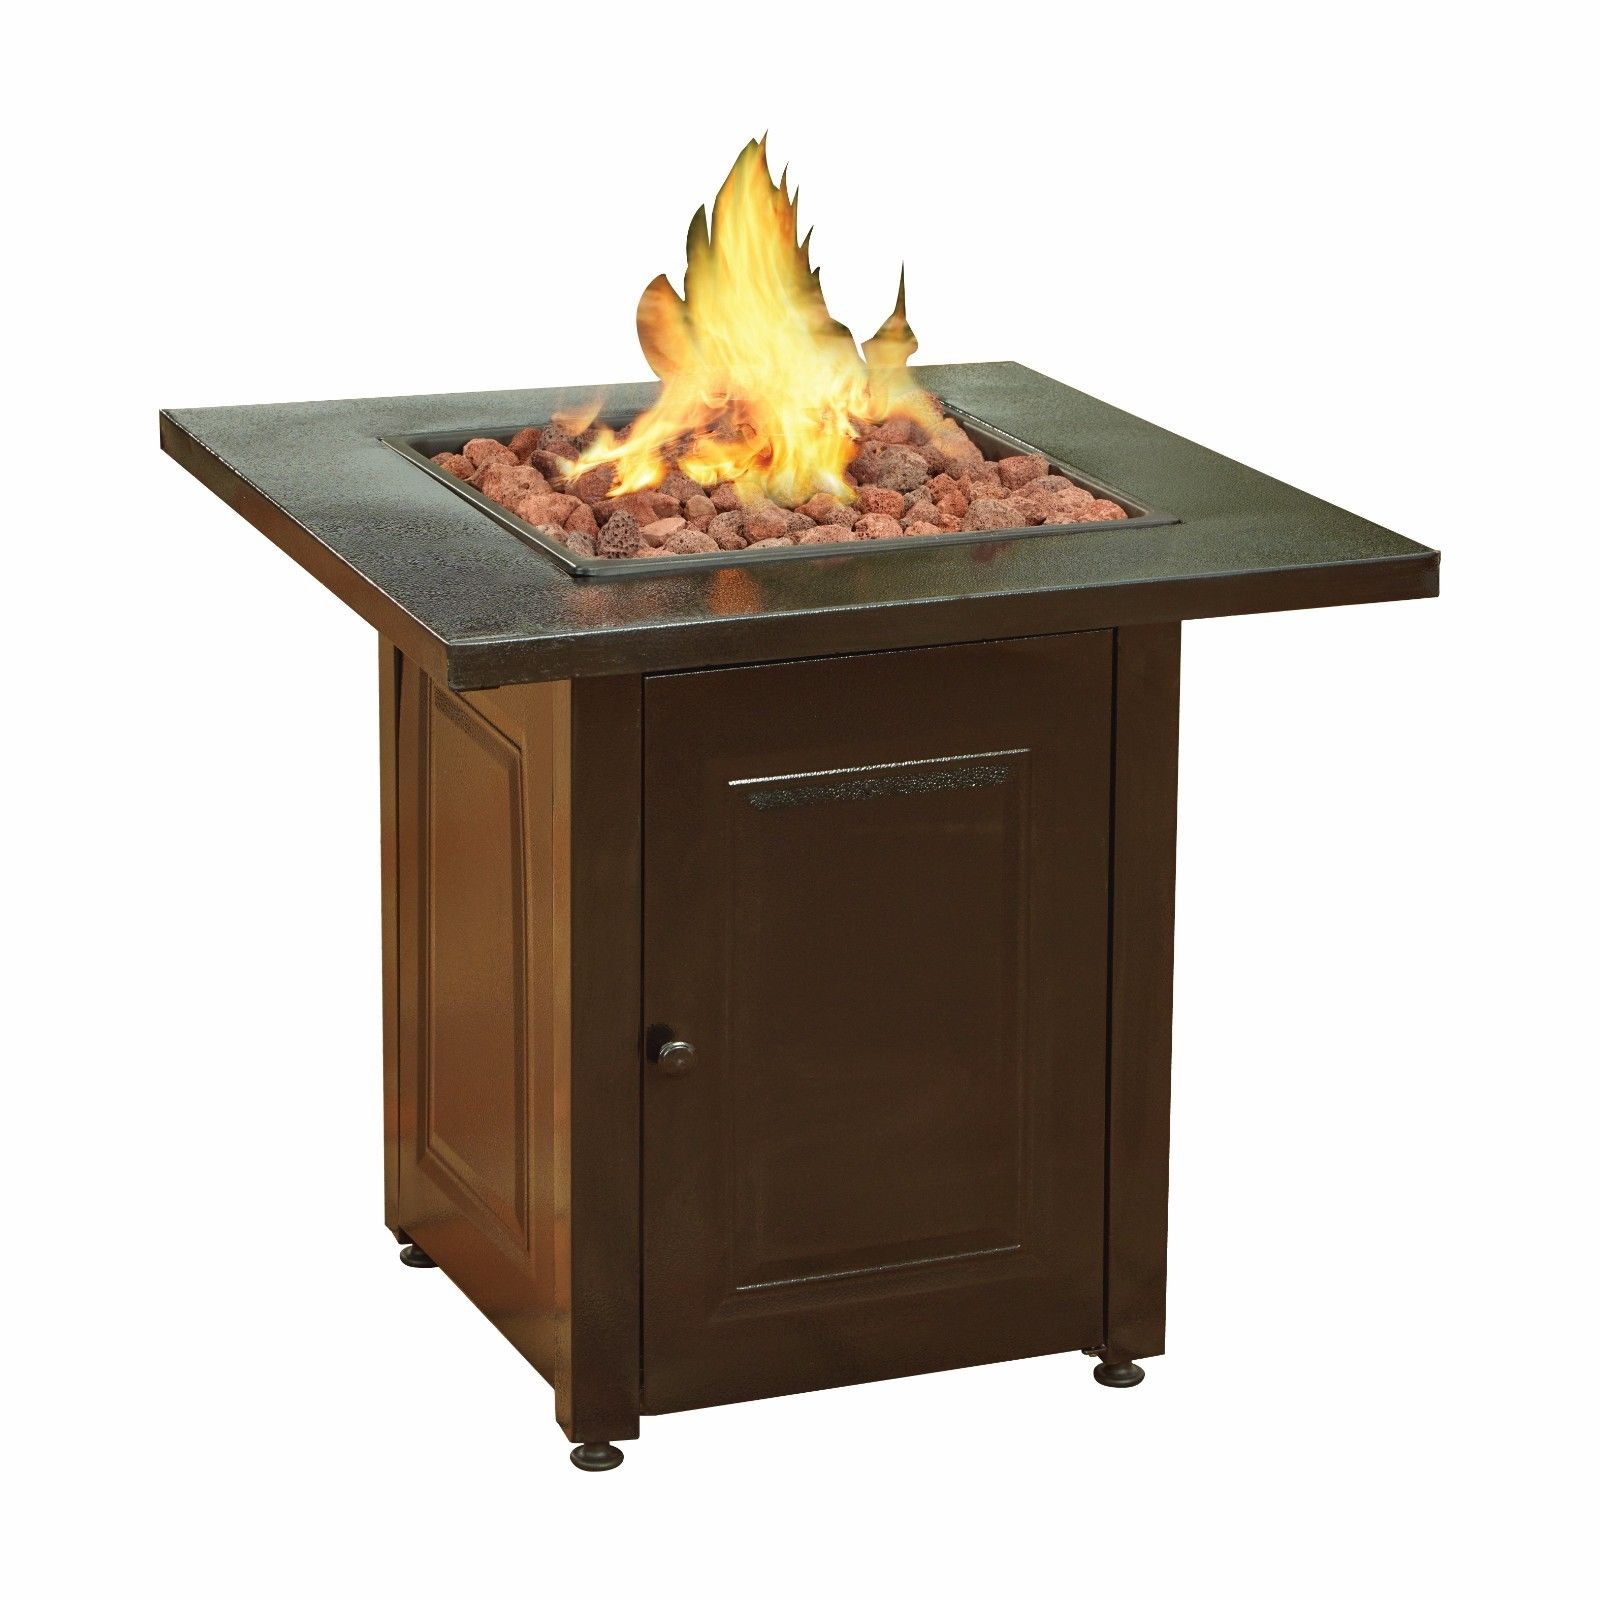 Propane patio heater with table Depot Propane Fire Pit Patio Heaters Antique Hammered Bronze Finish Outdoor Gas Table Walmartcom Walmart Propane Fire Pit Patio Heaters Antique Hammered Bronze Finish